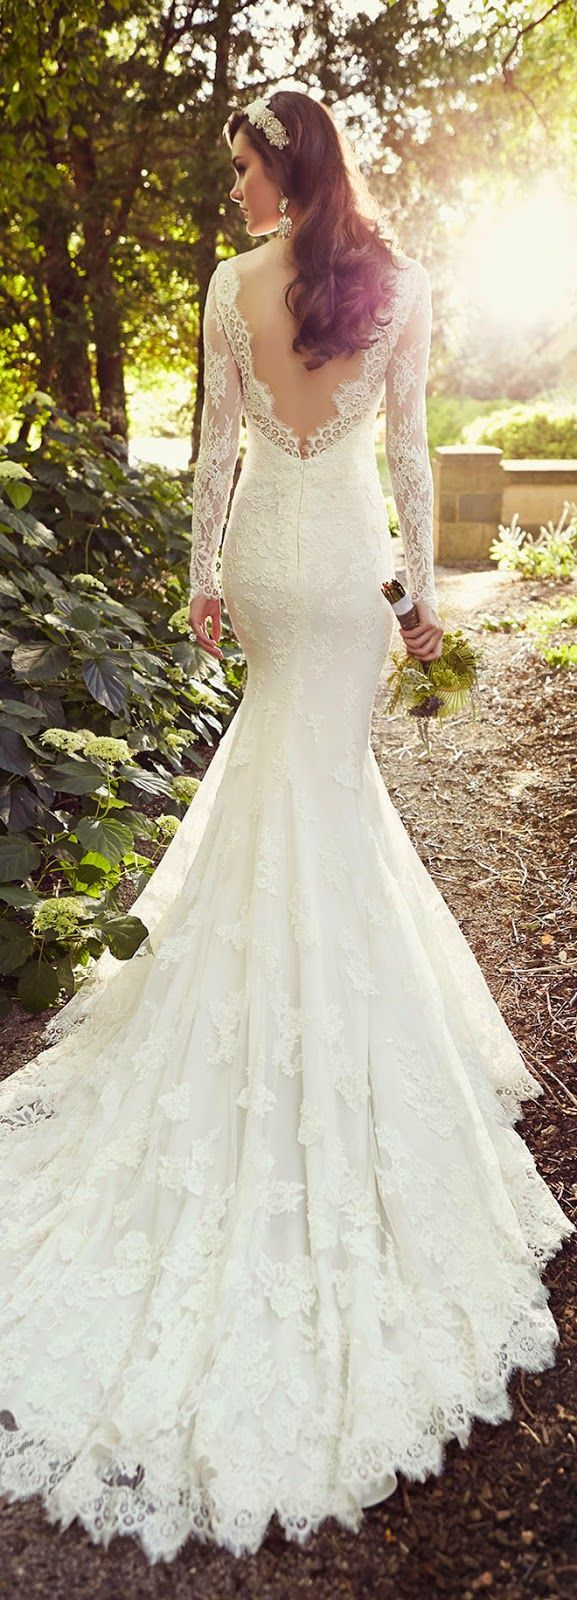 trendy ideas vine country wedding dresses fresh lace